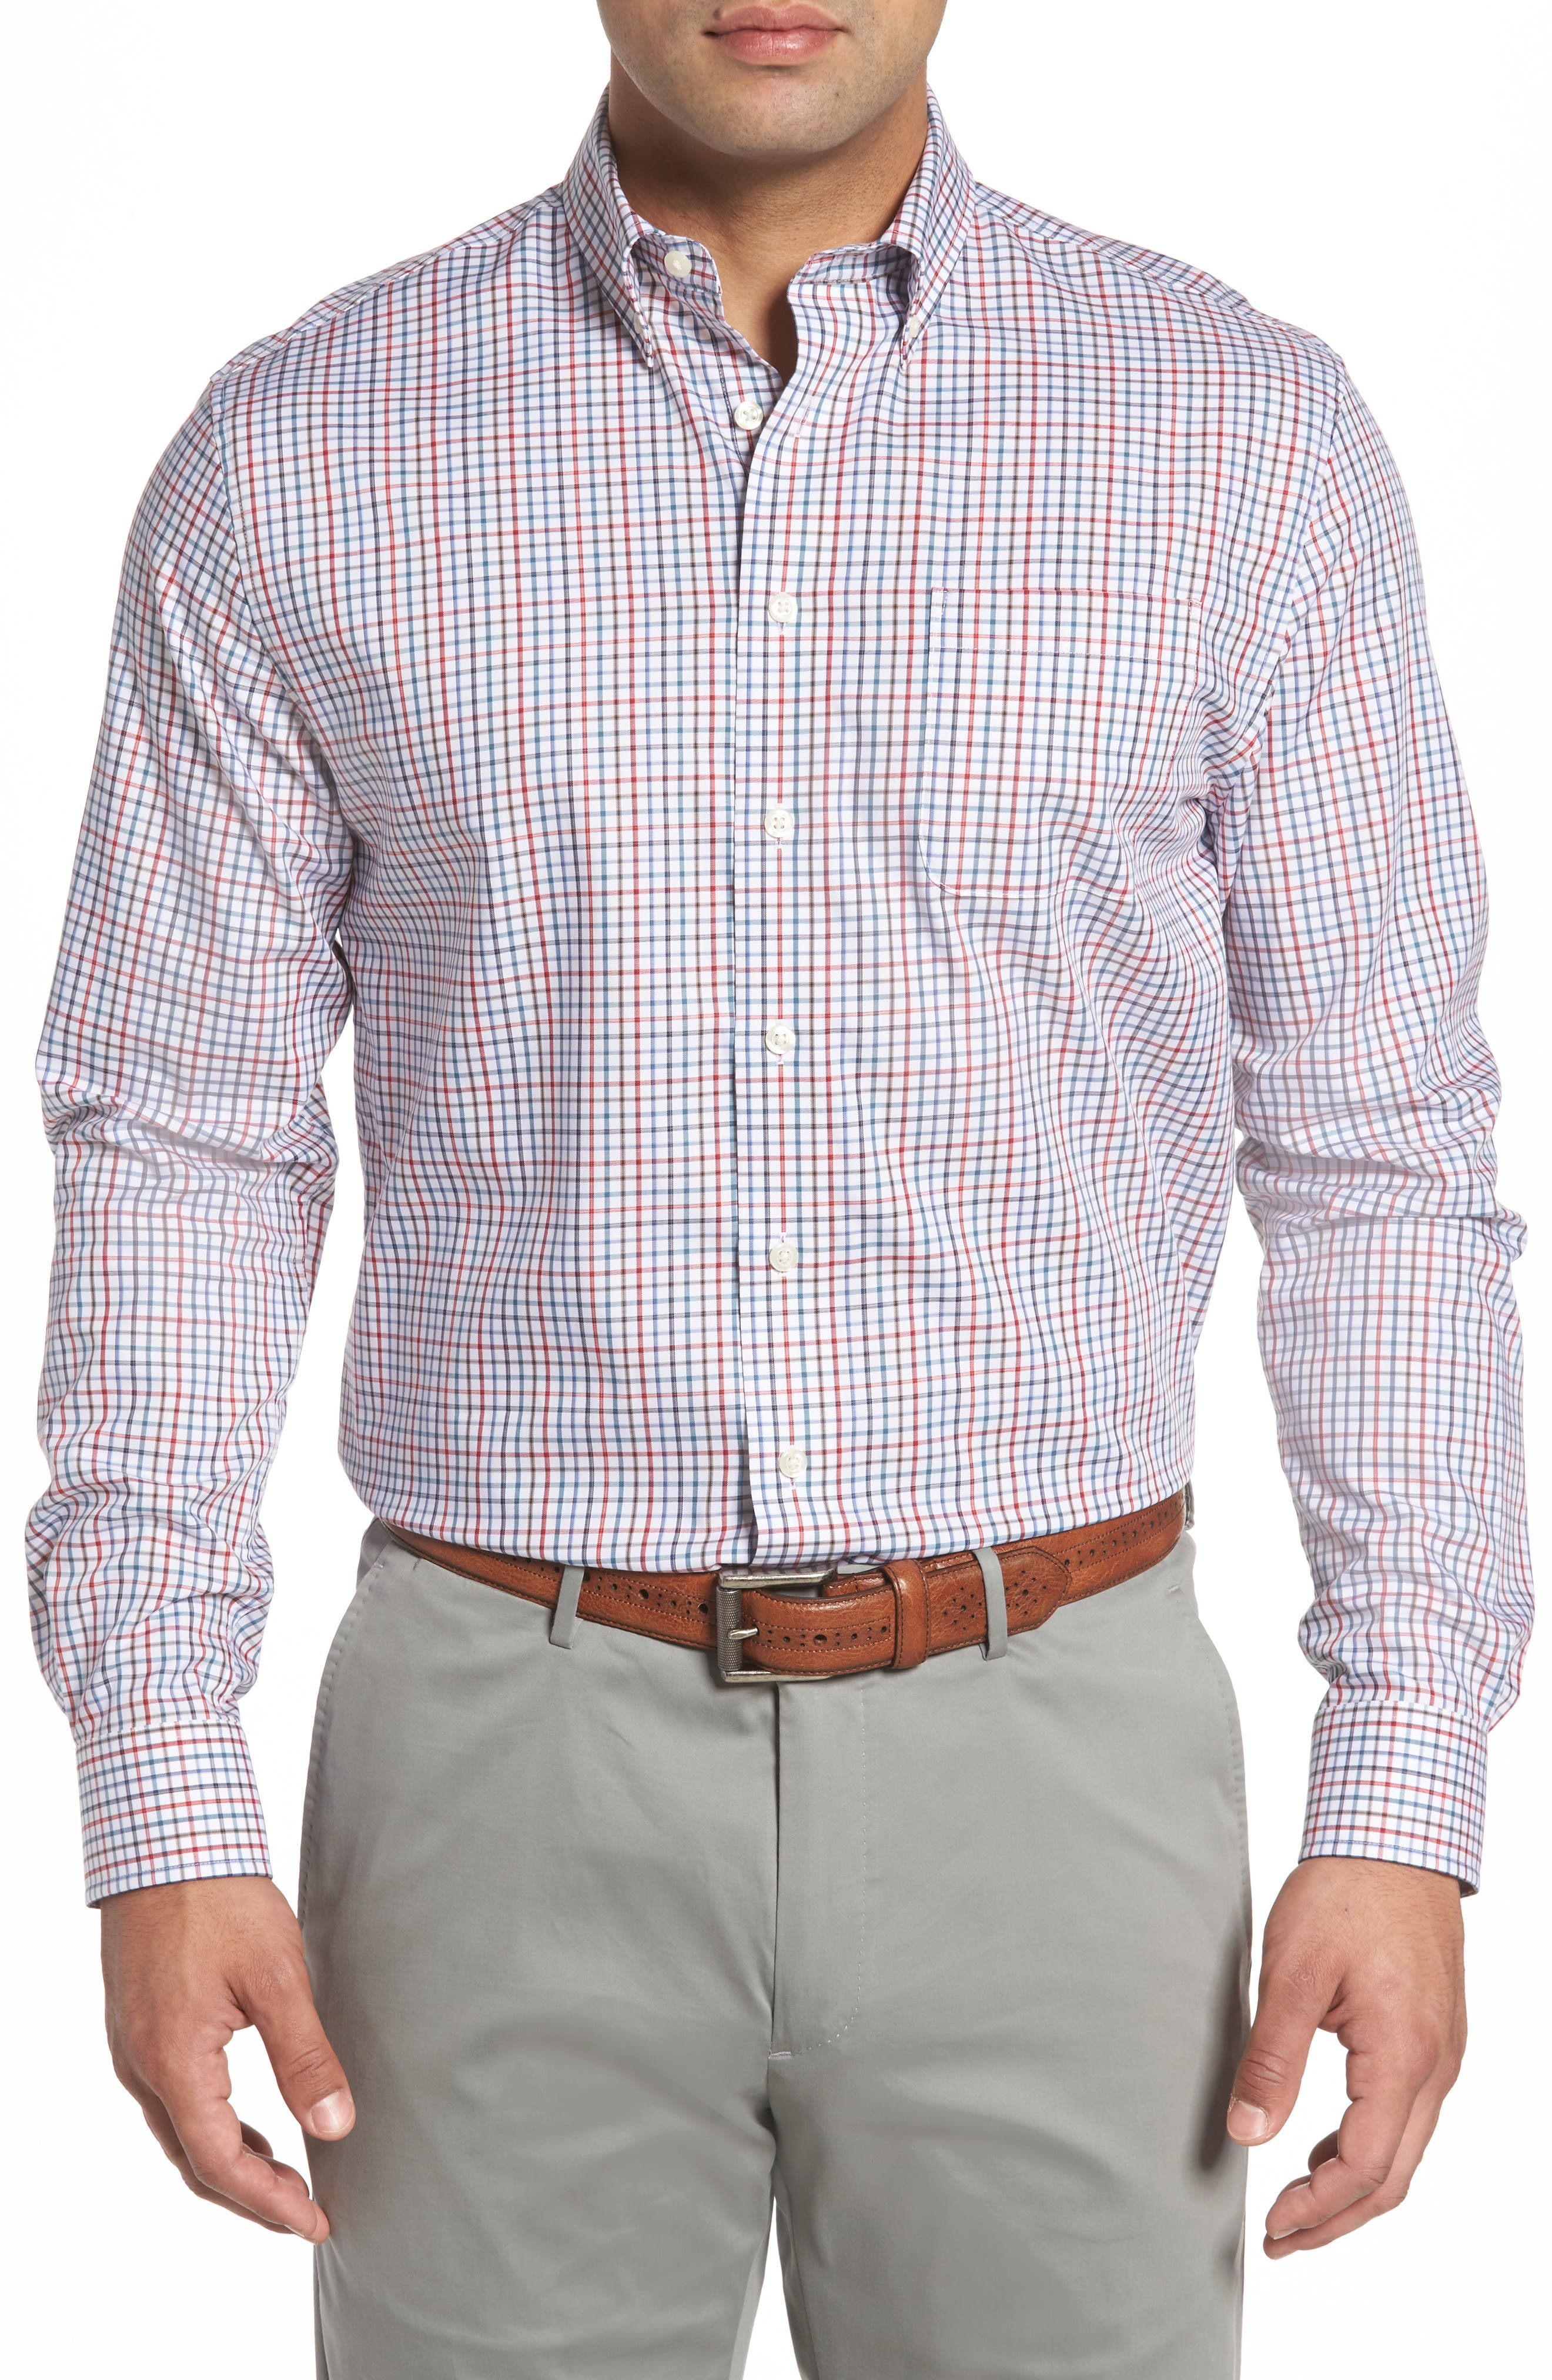 Snyder Classic Fit Check Sport Shirt,                             Main thumbnail 1, color,                             Phoenix